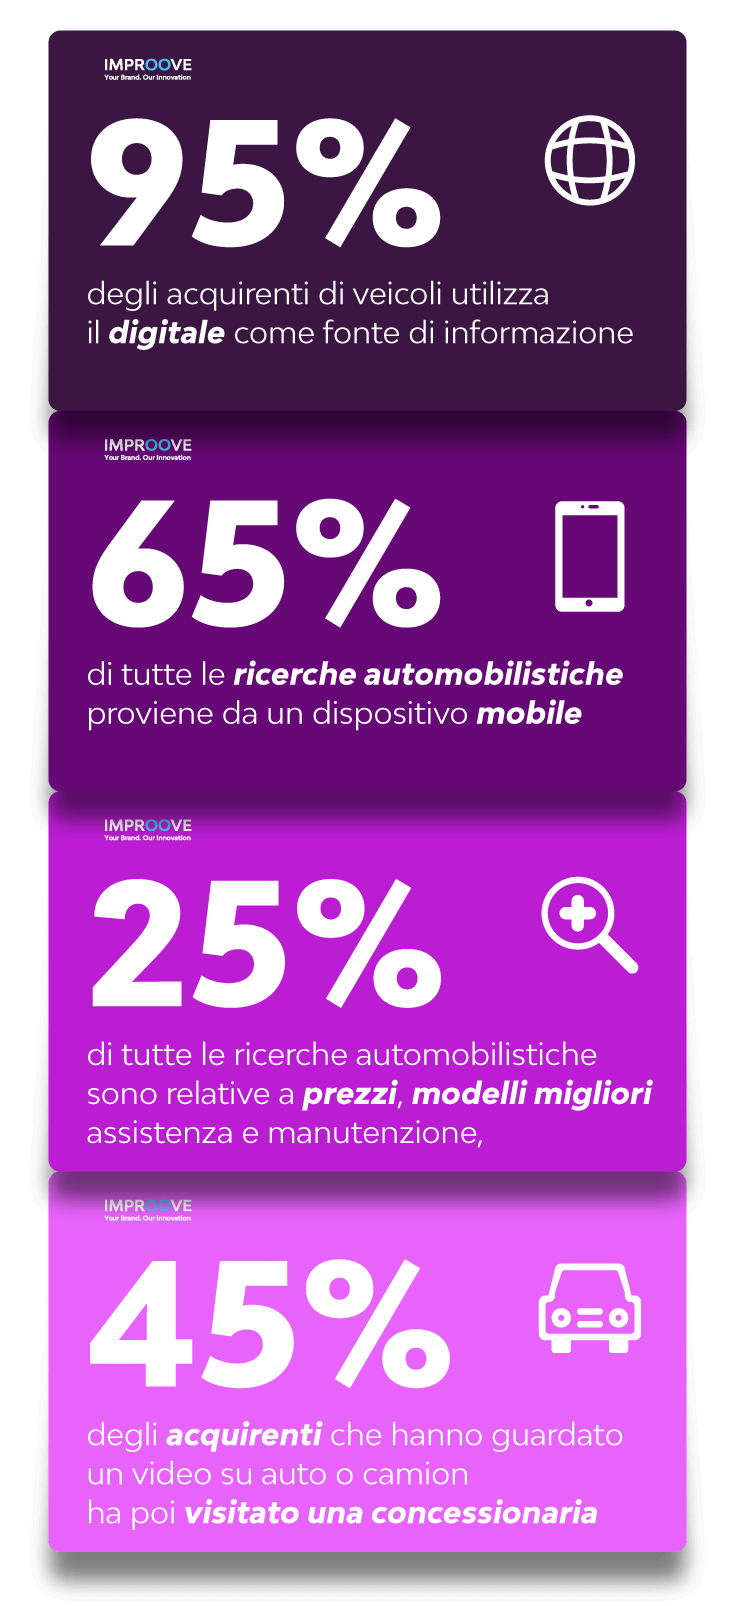 Infografica Marketing concessionarie auto - strategie digital automotive